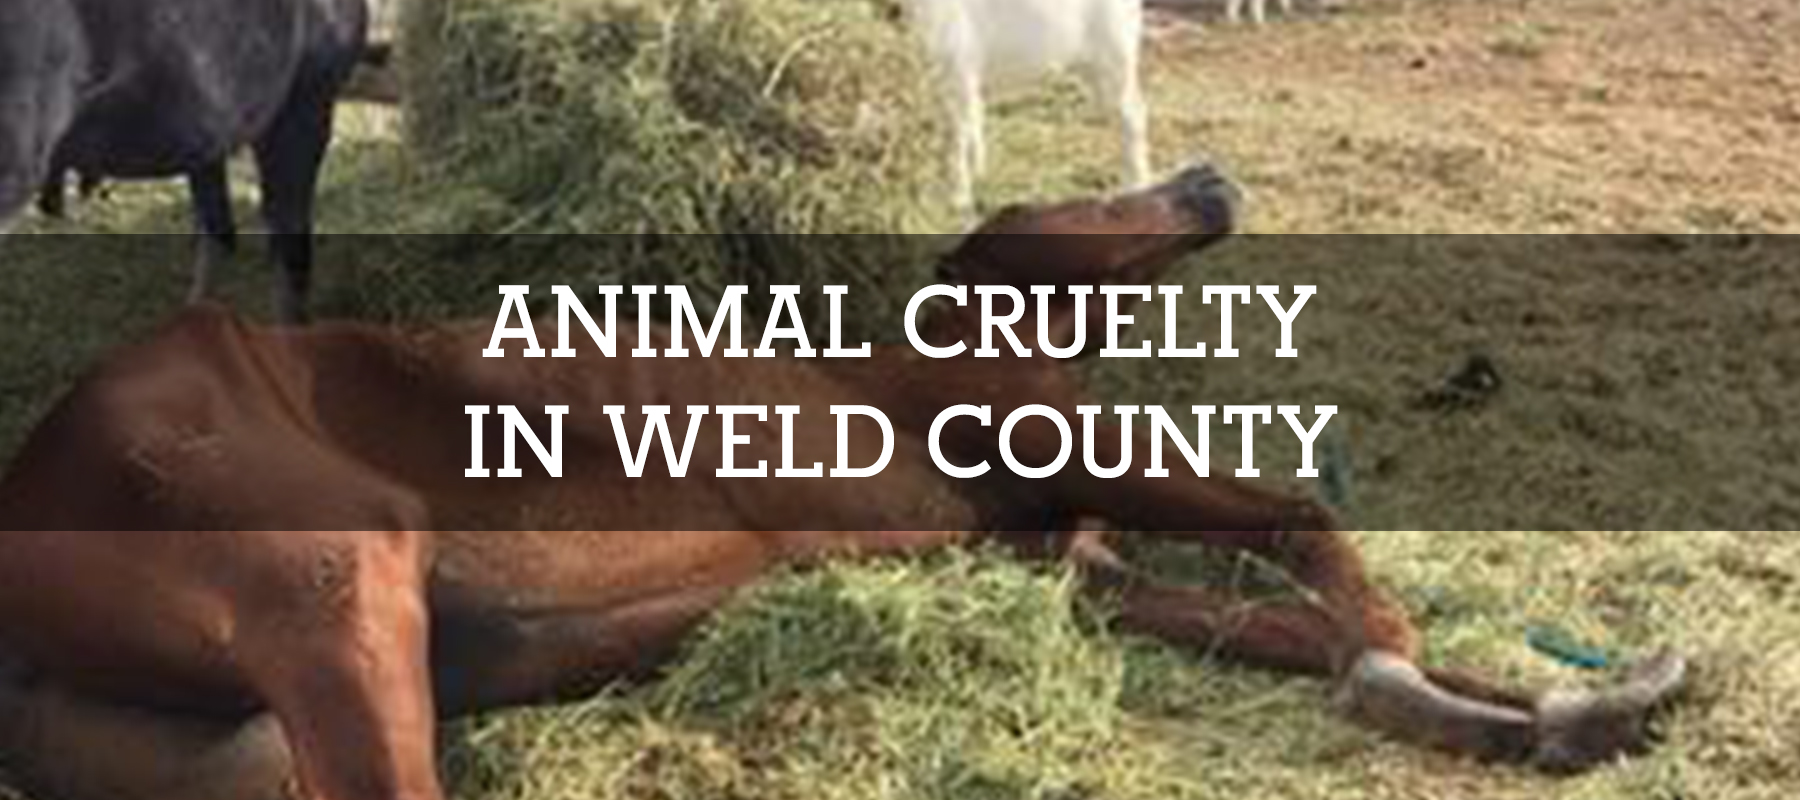 ANIMAL CRUELTY IN WELD COUNTY COLORADO